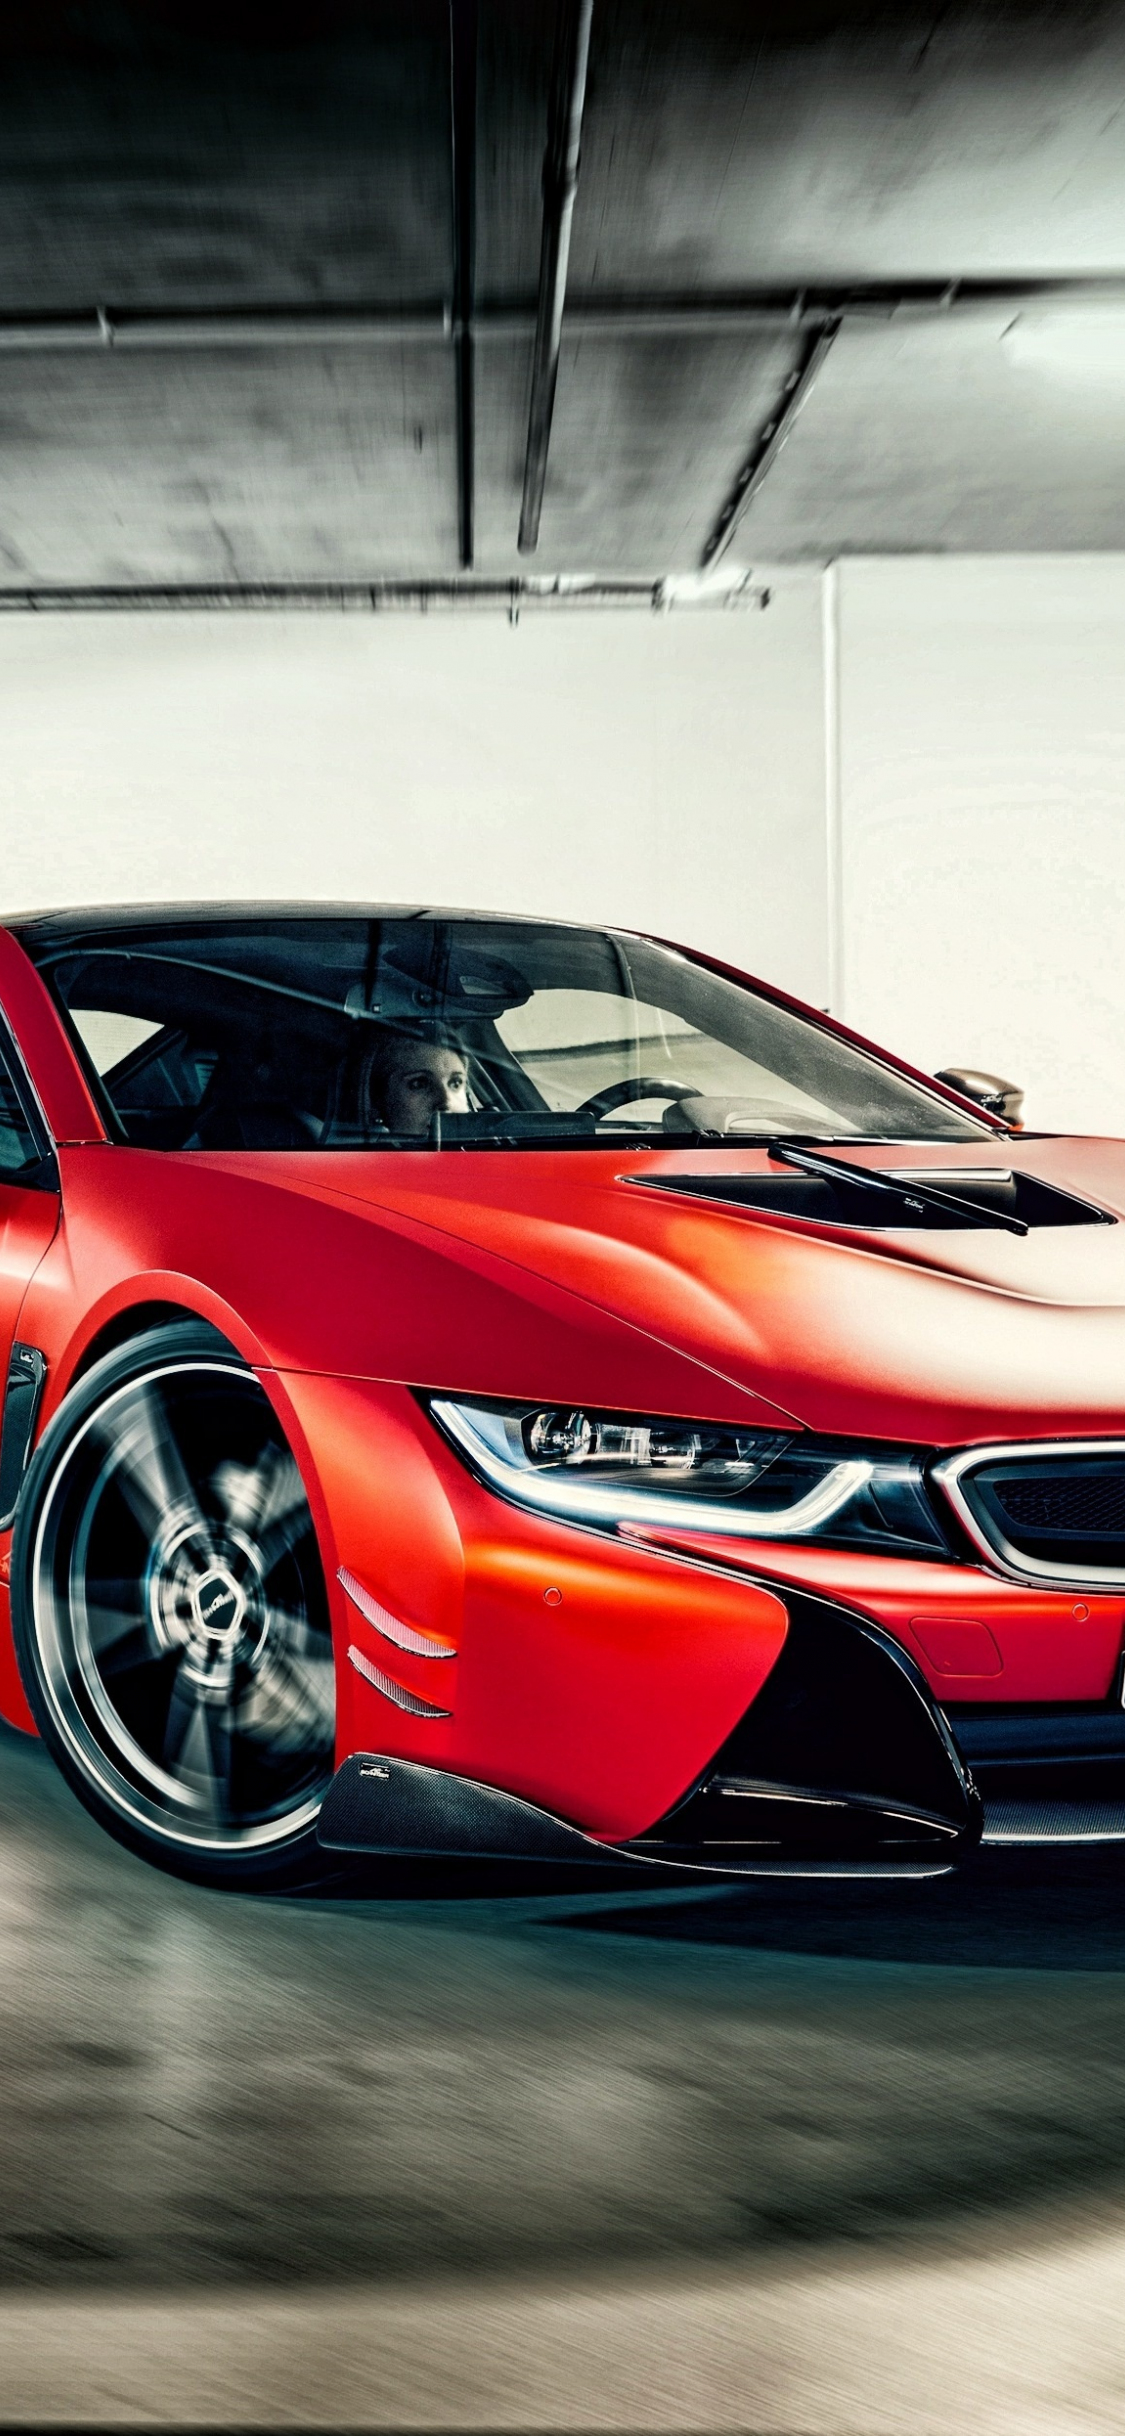 Download 1125x2436 Wallpaper Bmw I8 Red Luxurious Car